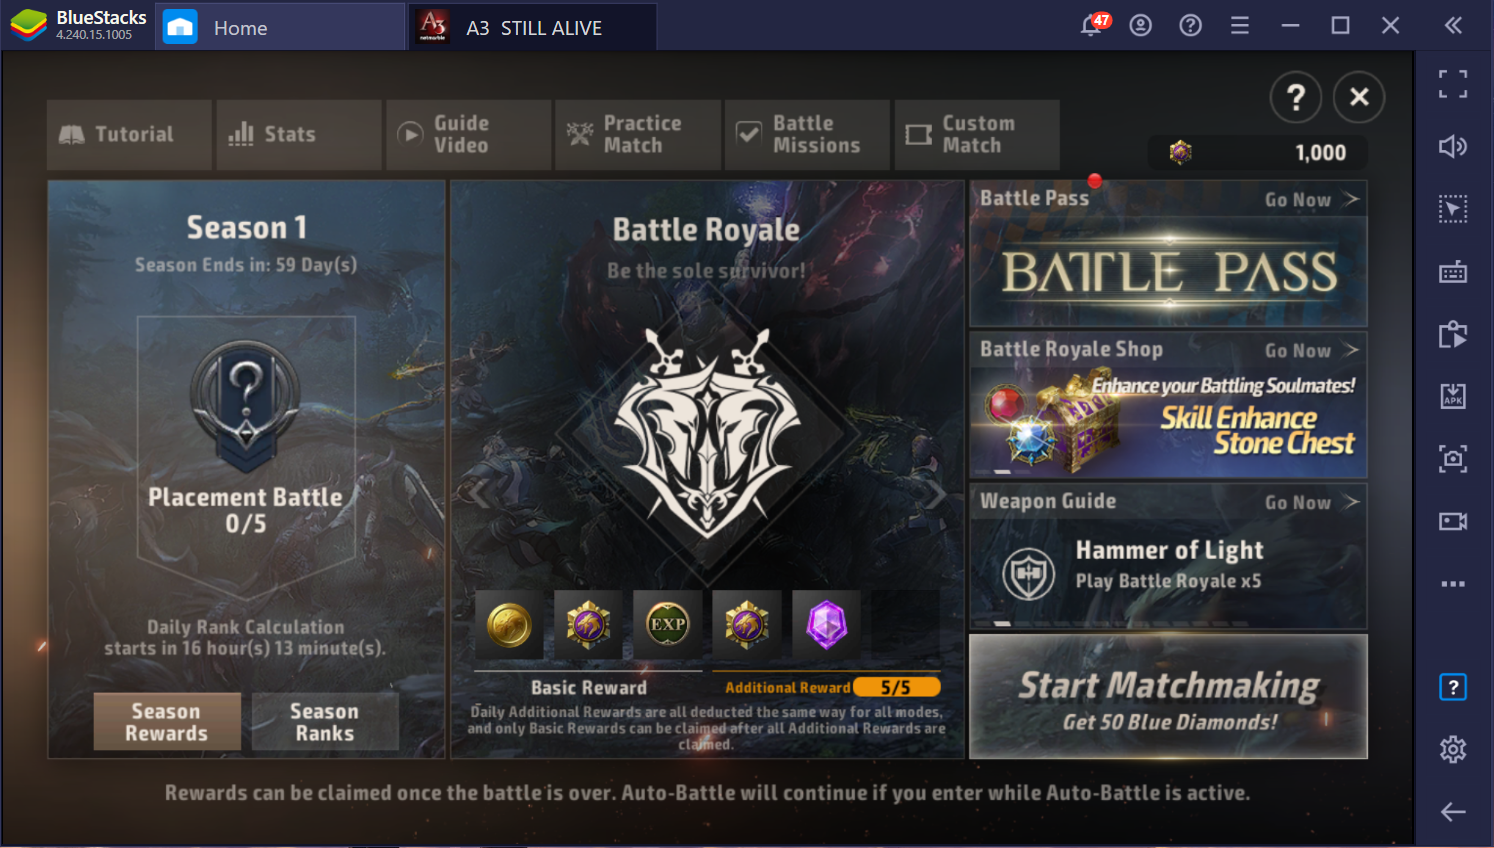 Enjoy the Combination of MMORPG & Battle Royale in A3: STILL ALIVE on PC with BlueStacks